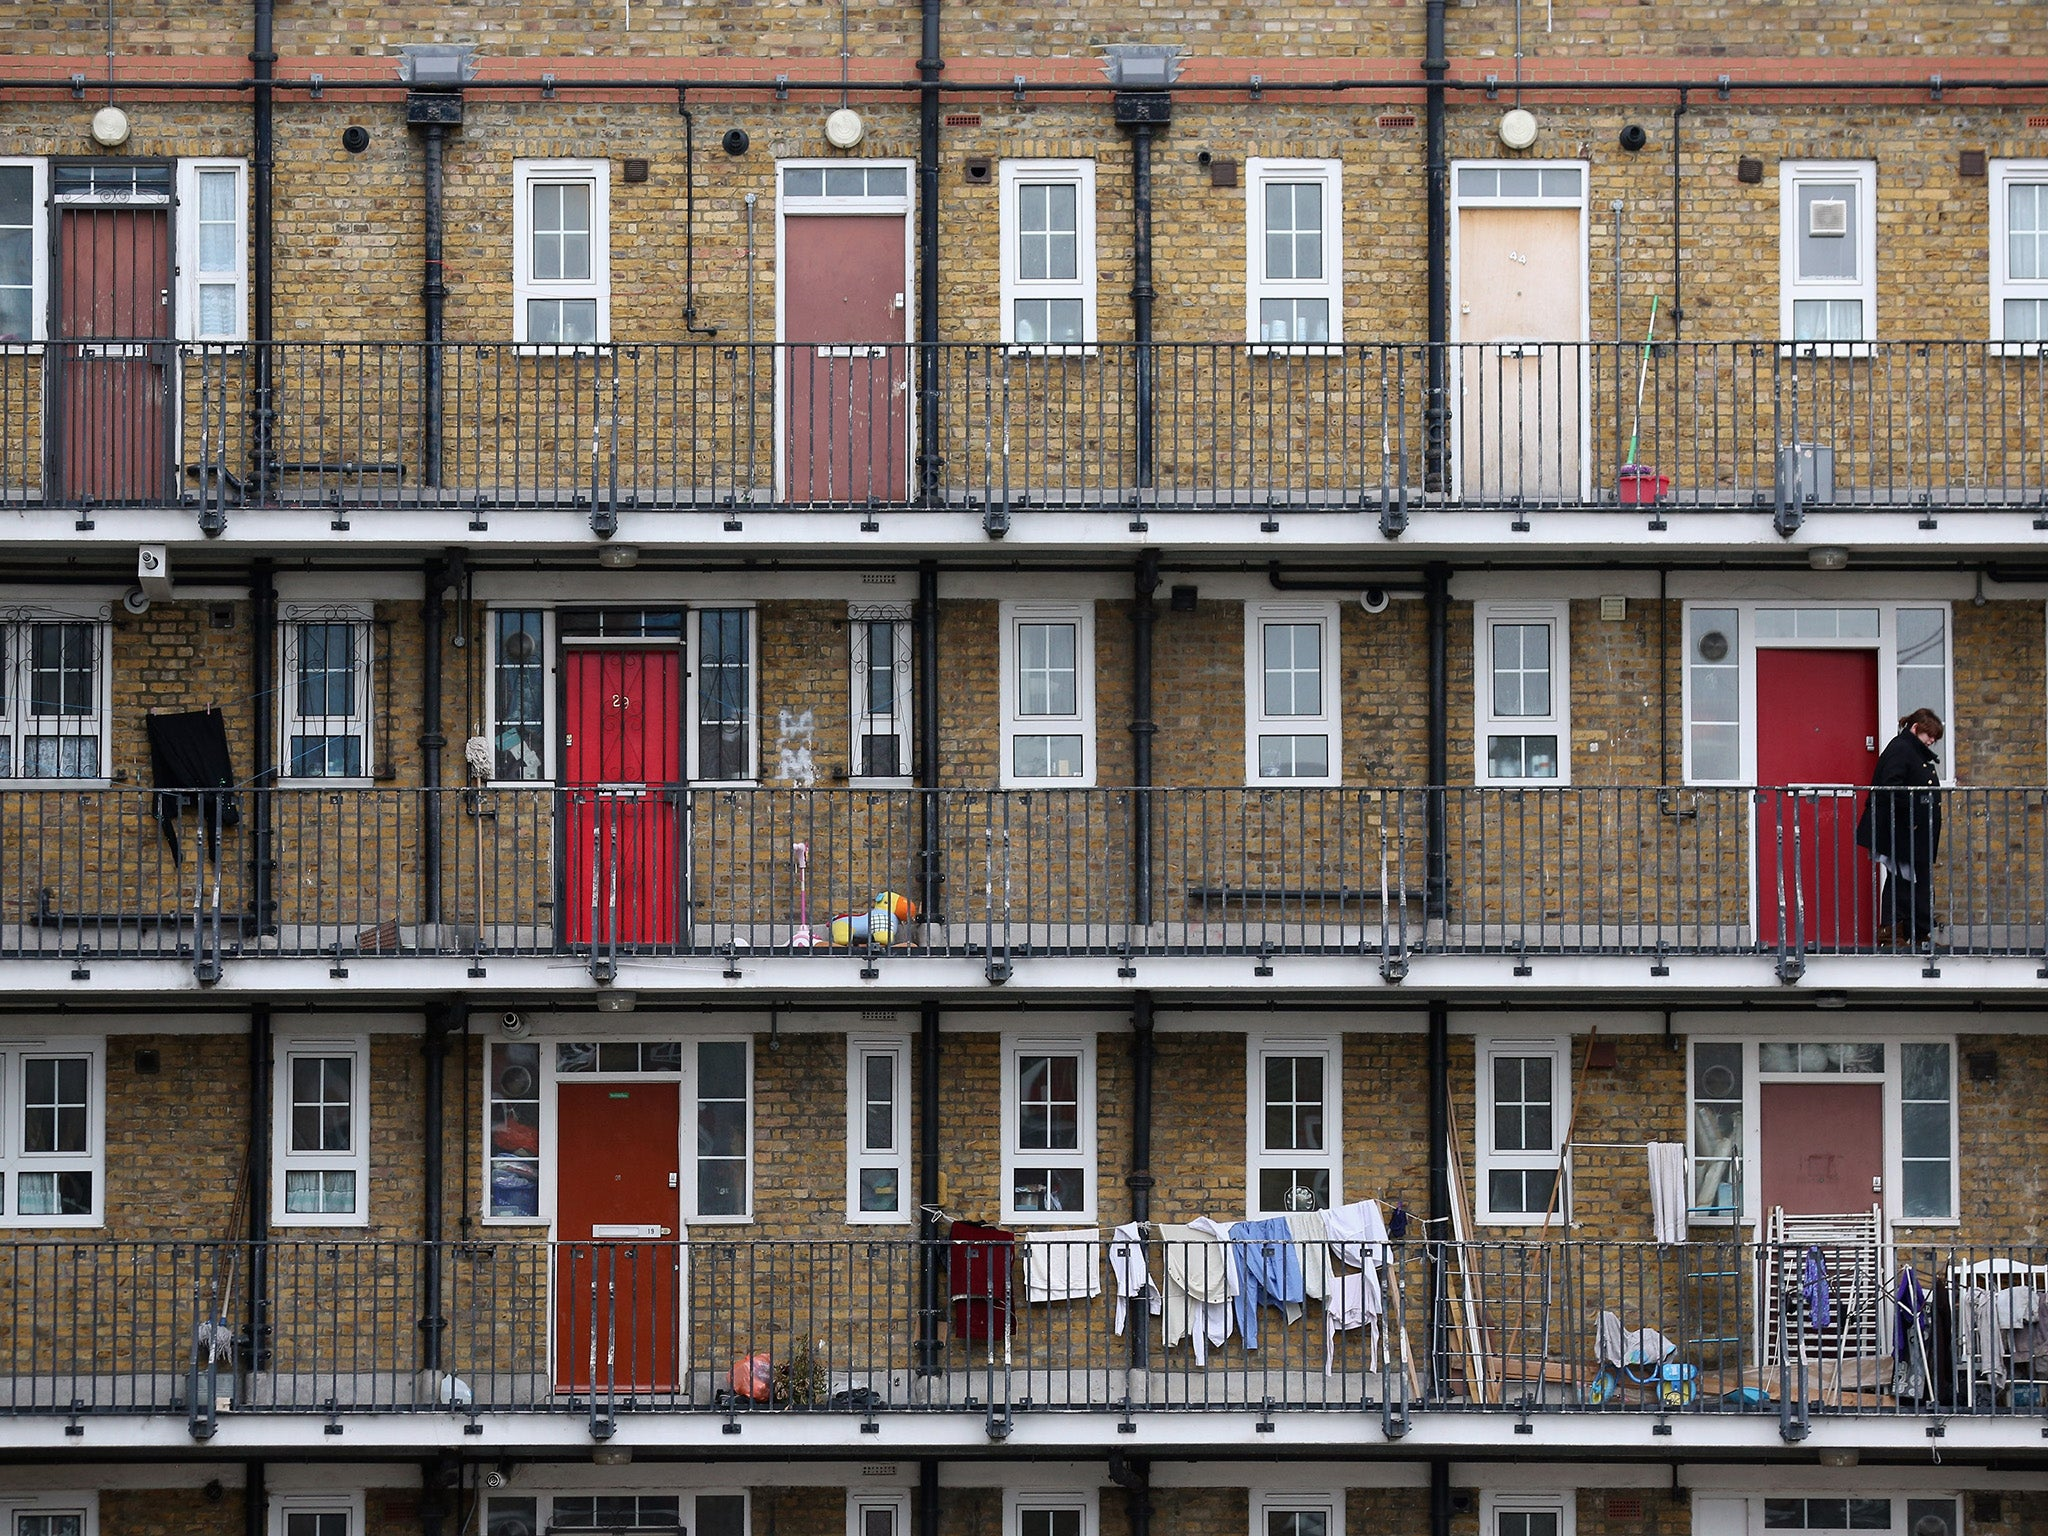 London the only British city where renting a flat is cheaper than buying, research finds